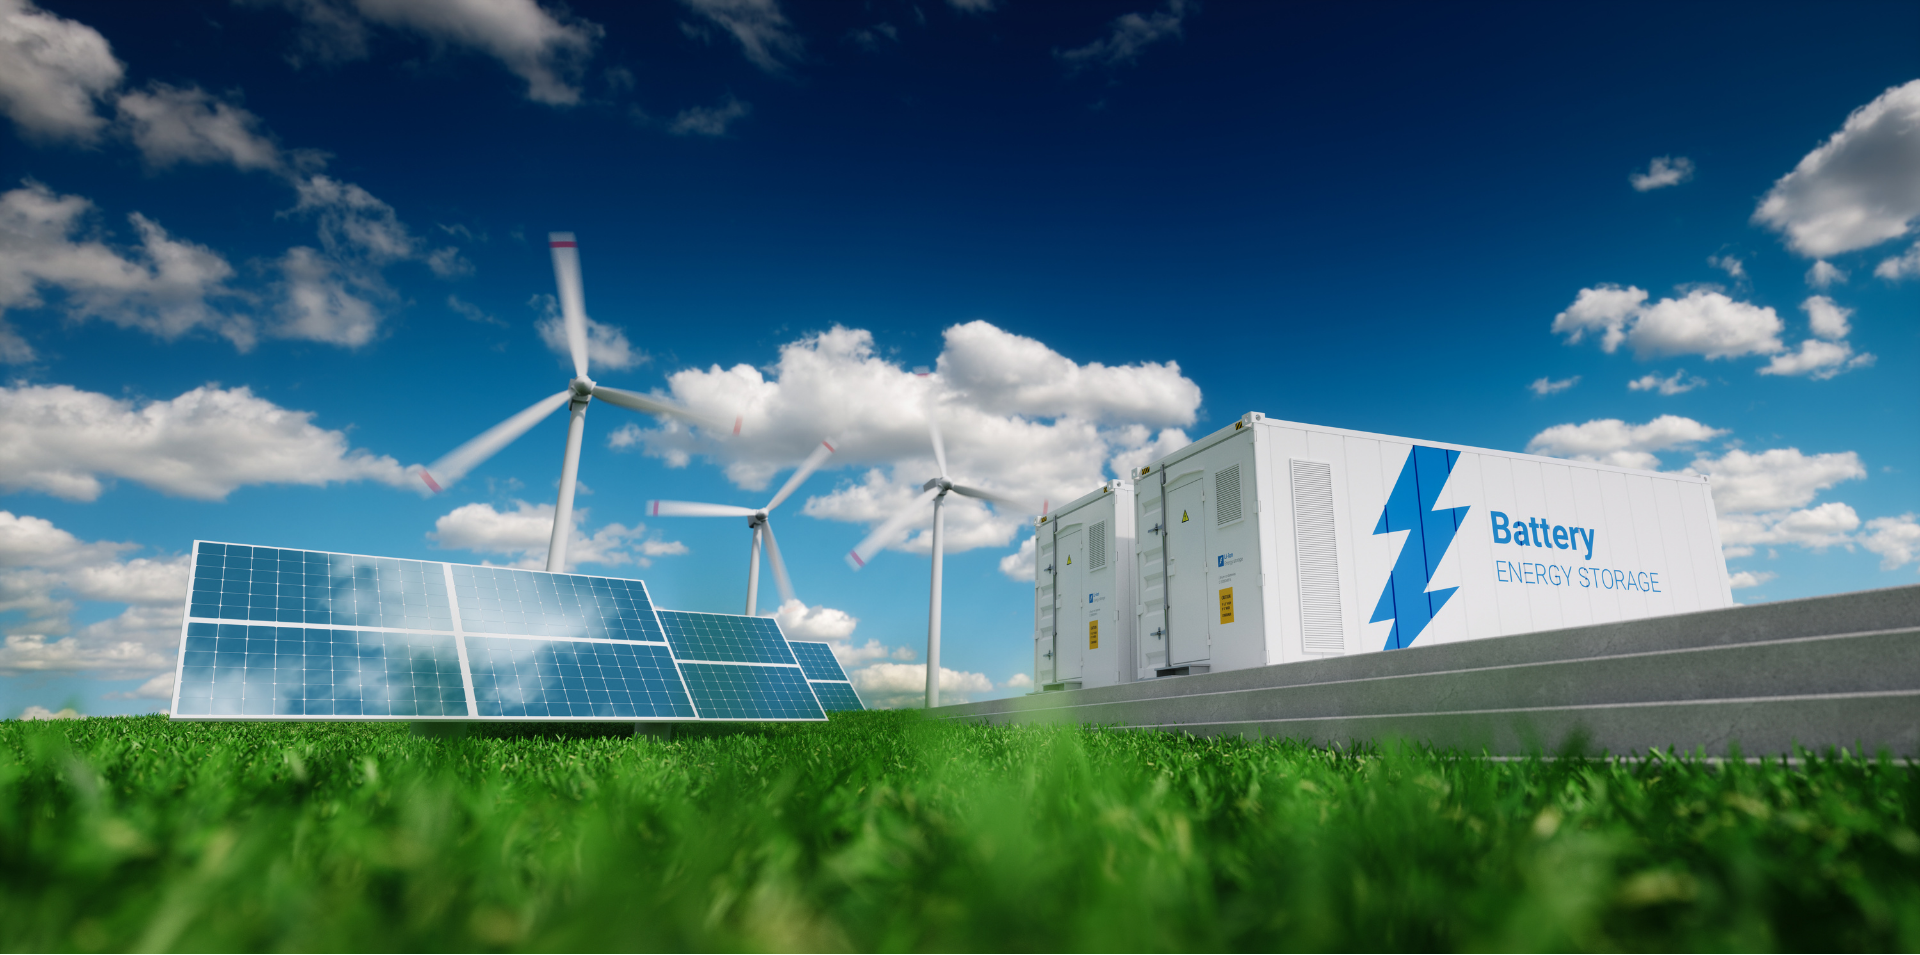 Solar, wind and battery storage